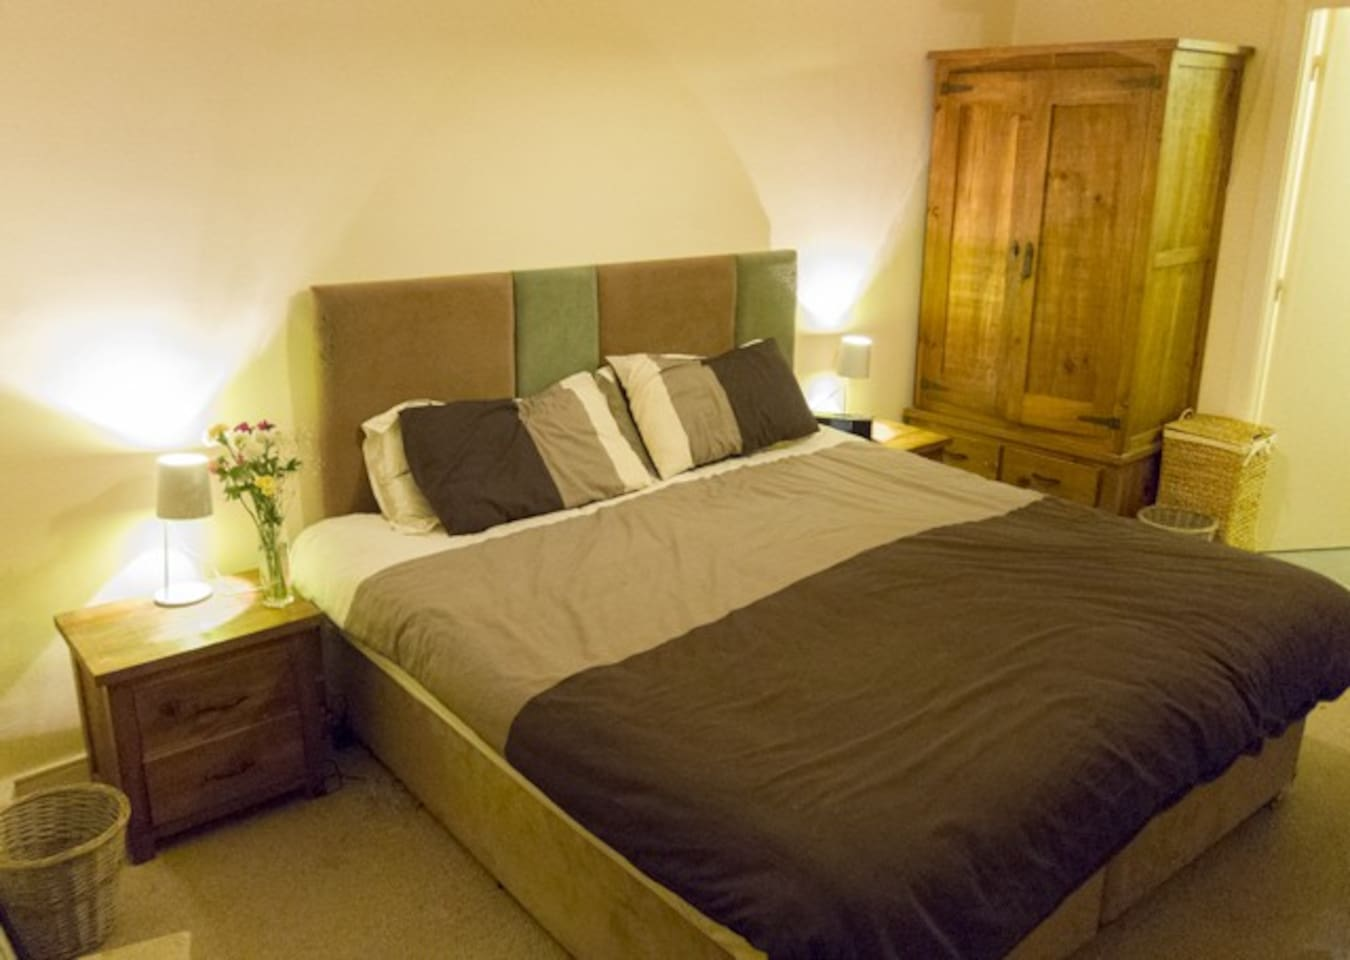 Large comfortable Super King sized bed with laptop and free internet access.